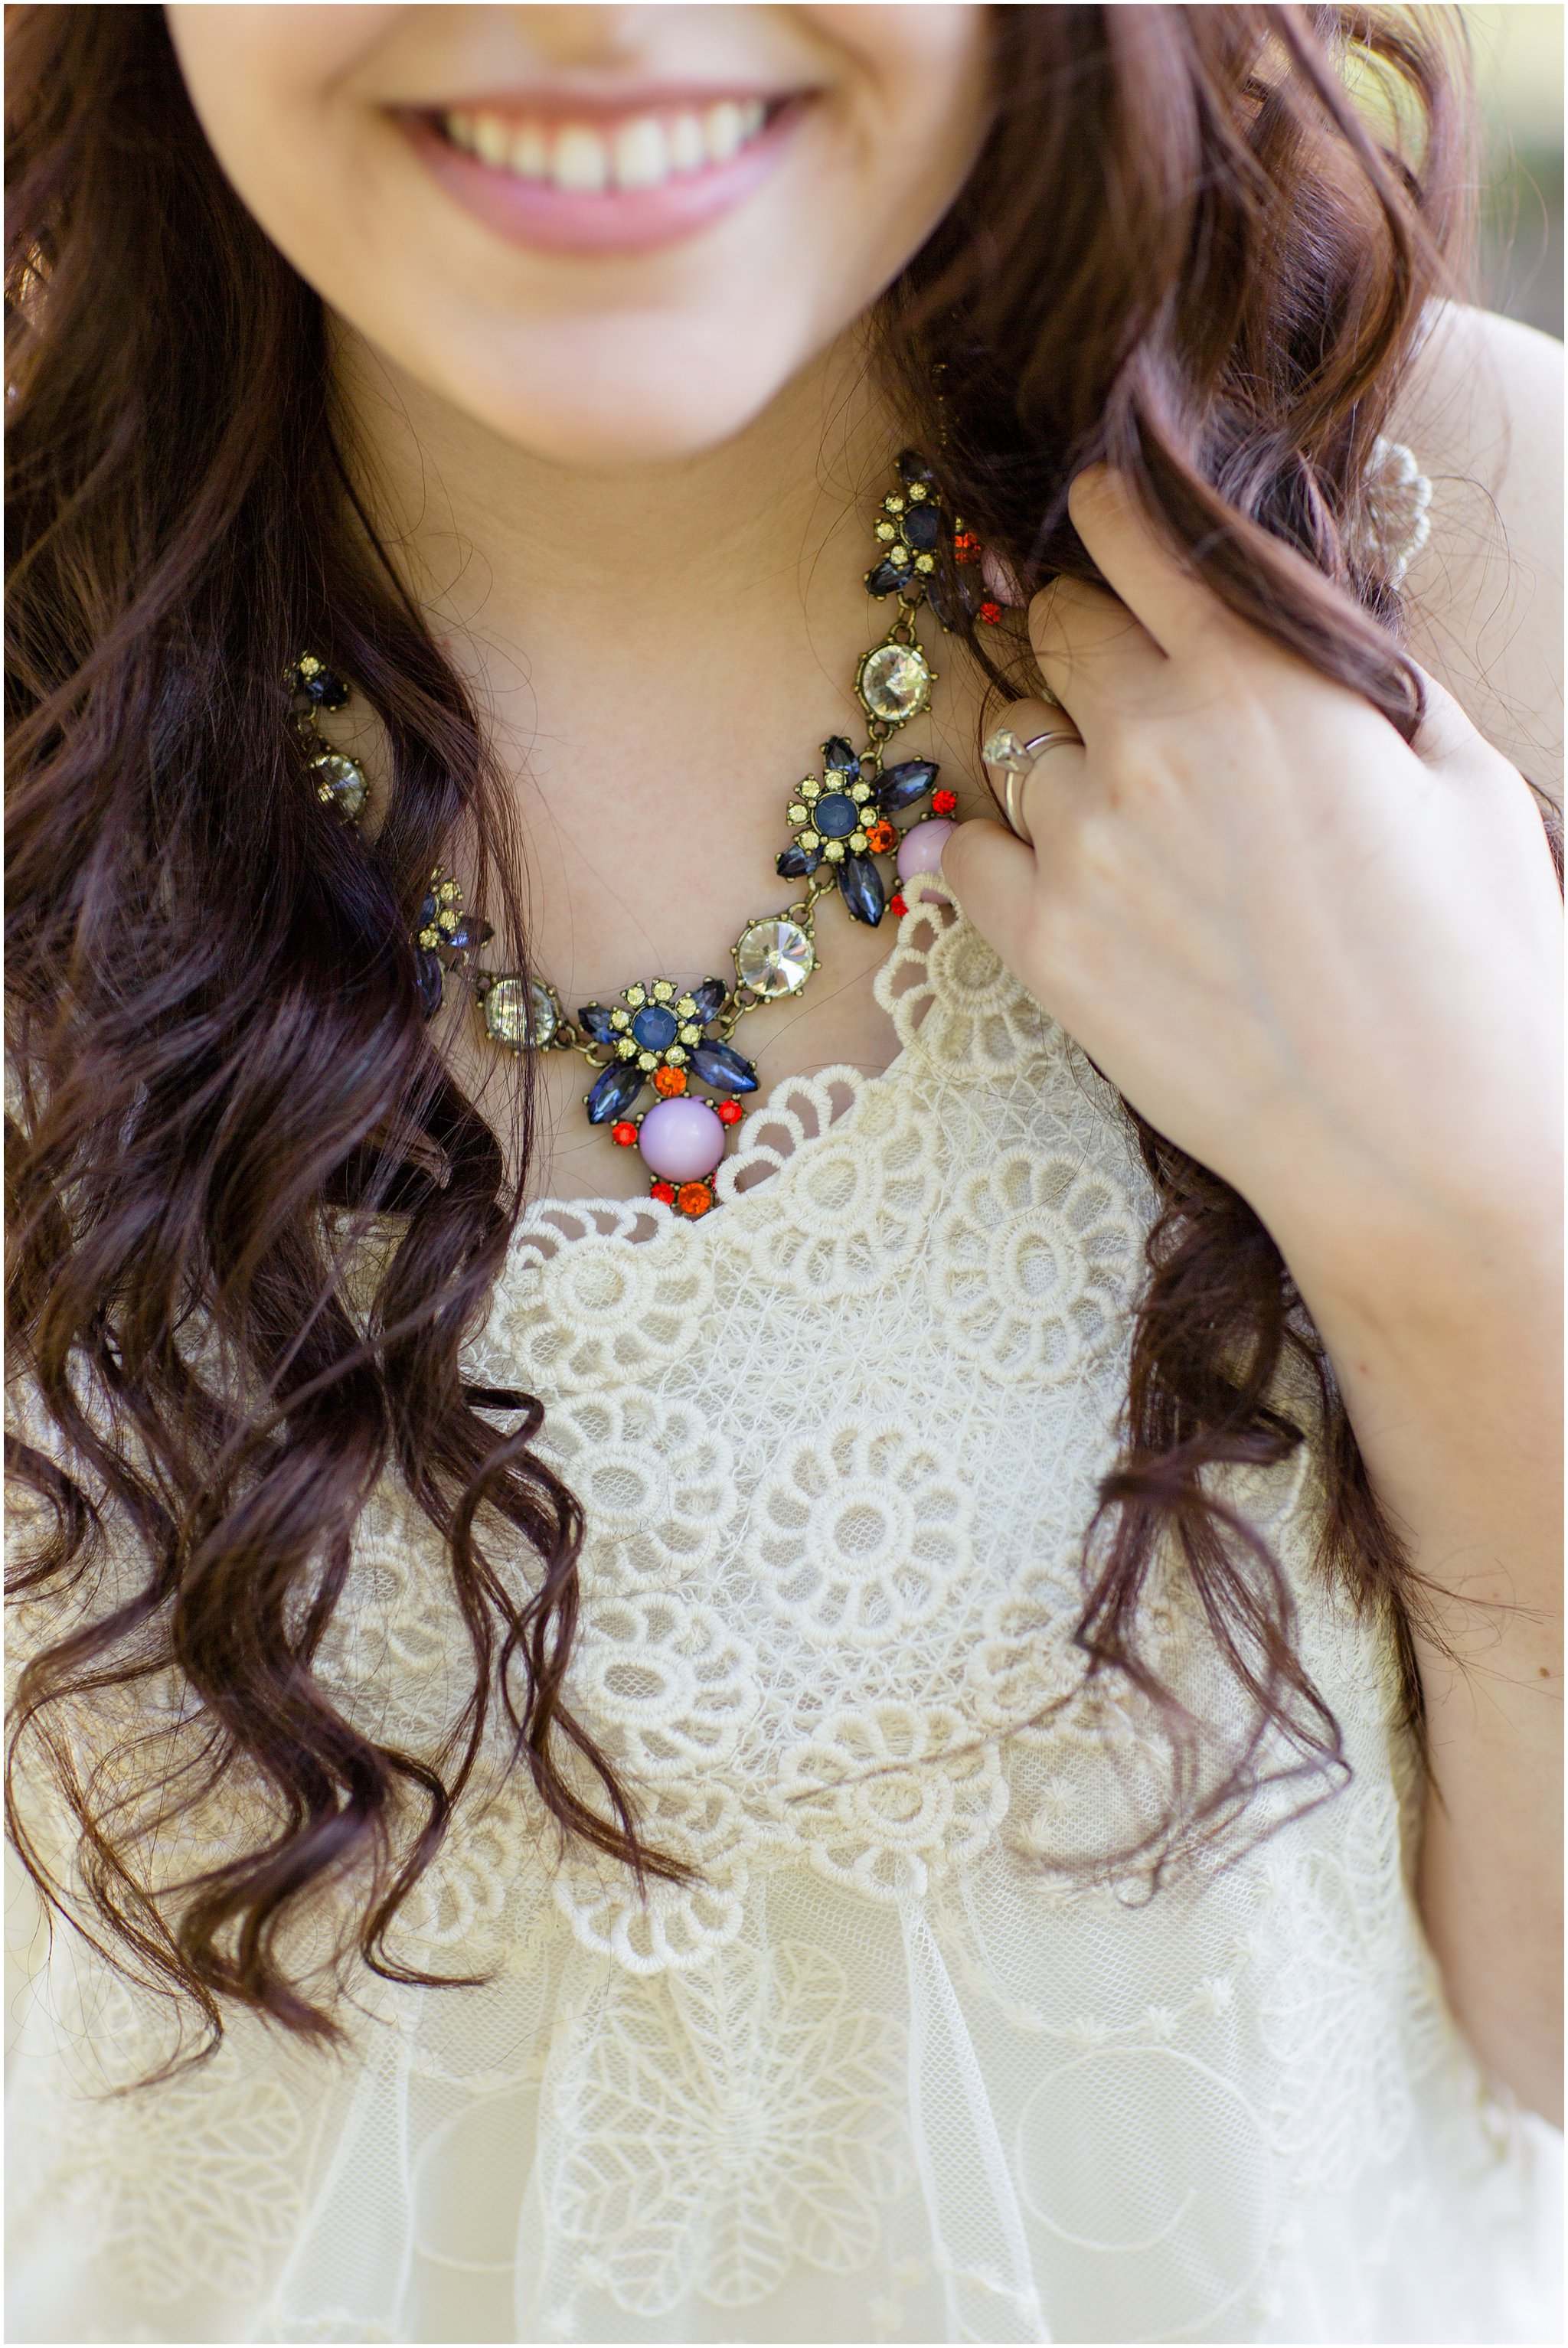 Bride-to-Be - Necklace & Ring Details